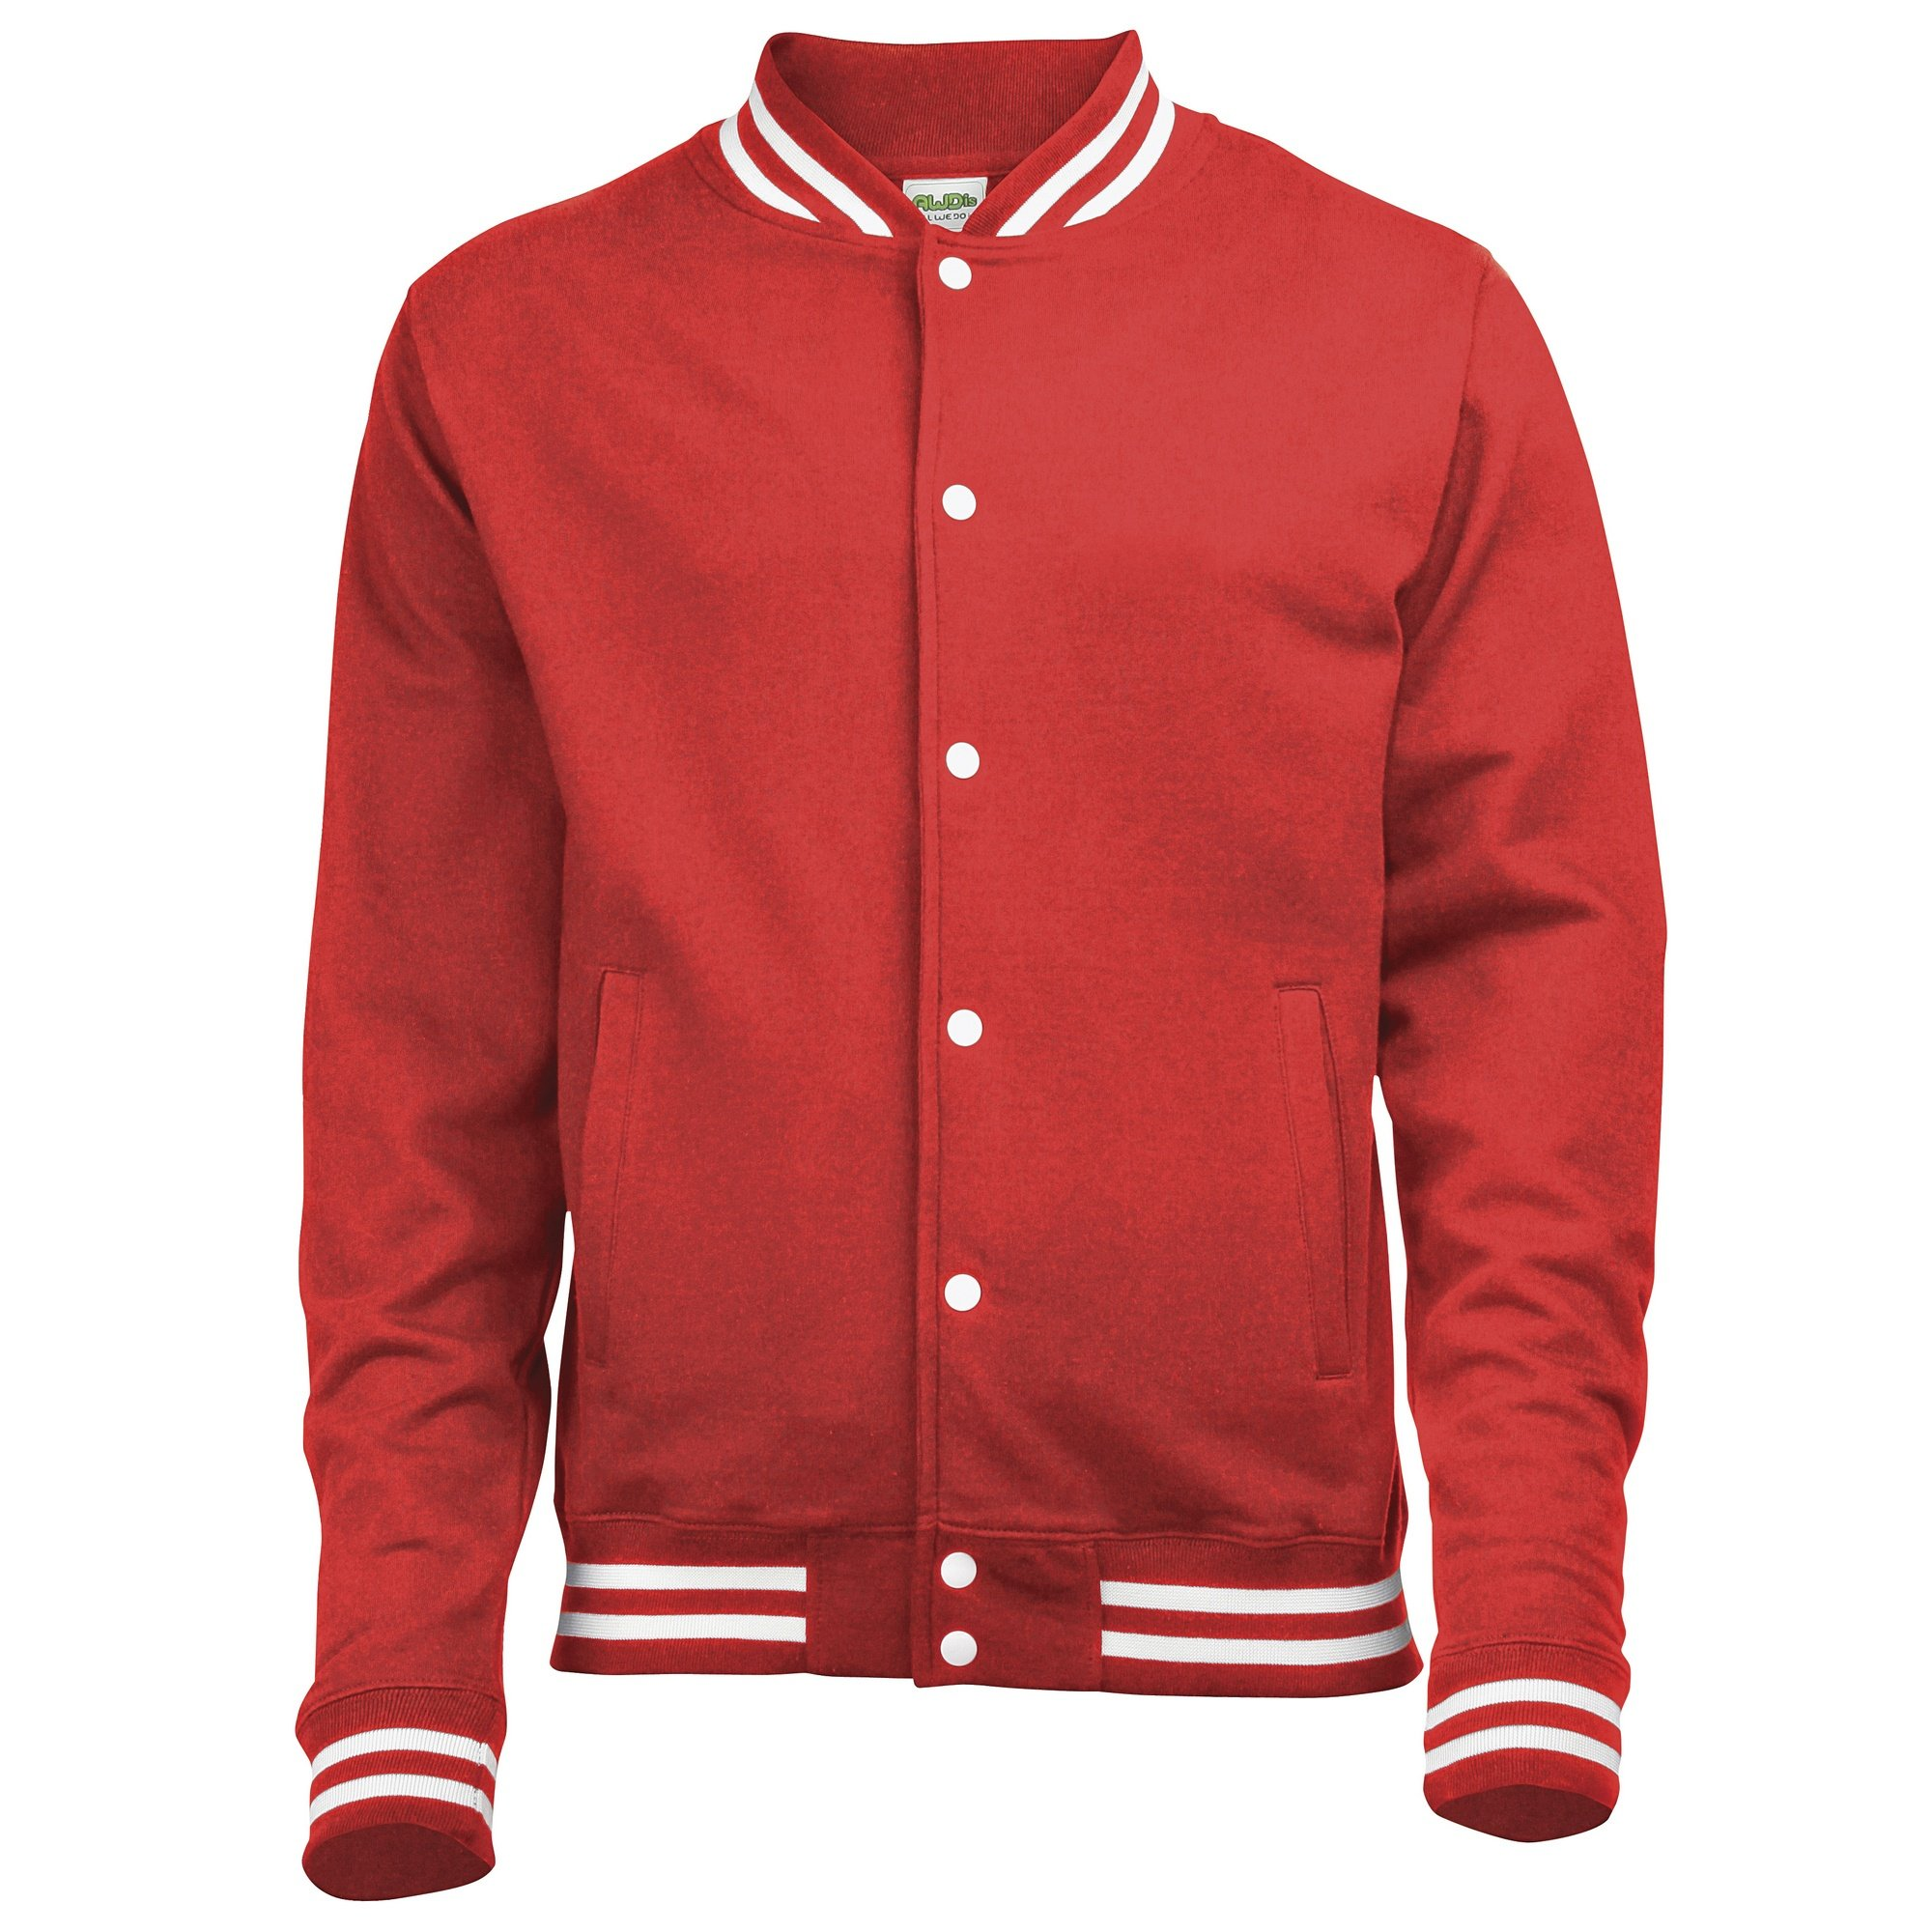 Awdis Mens College Jacket (L) (Fire Red)